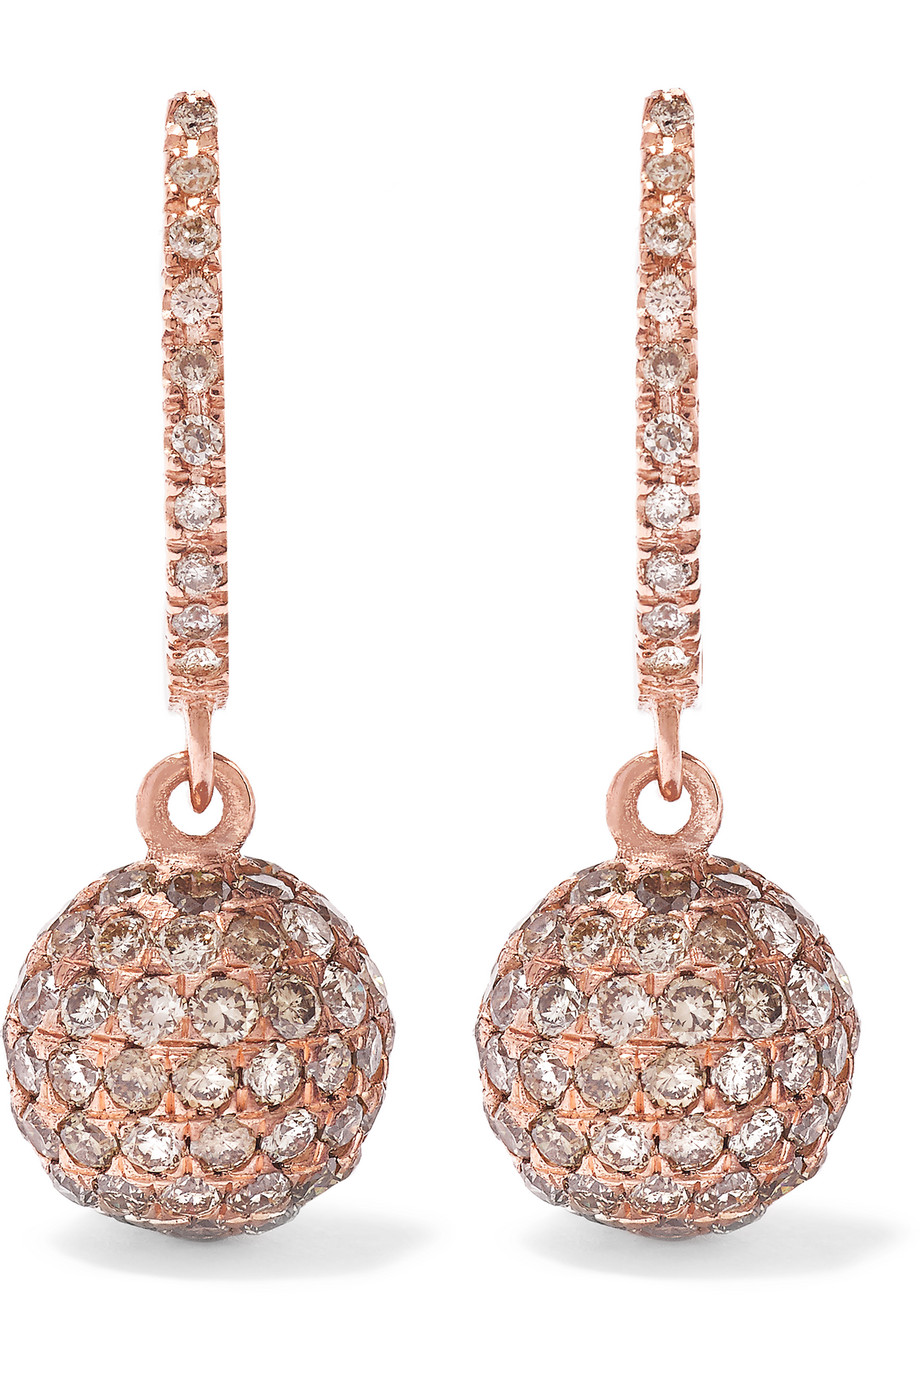 Ileana Makri 18-Karat Rose Gold Diamond Earrings, Women's